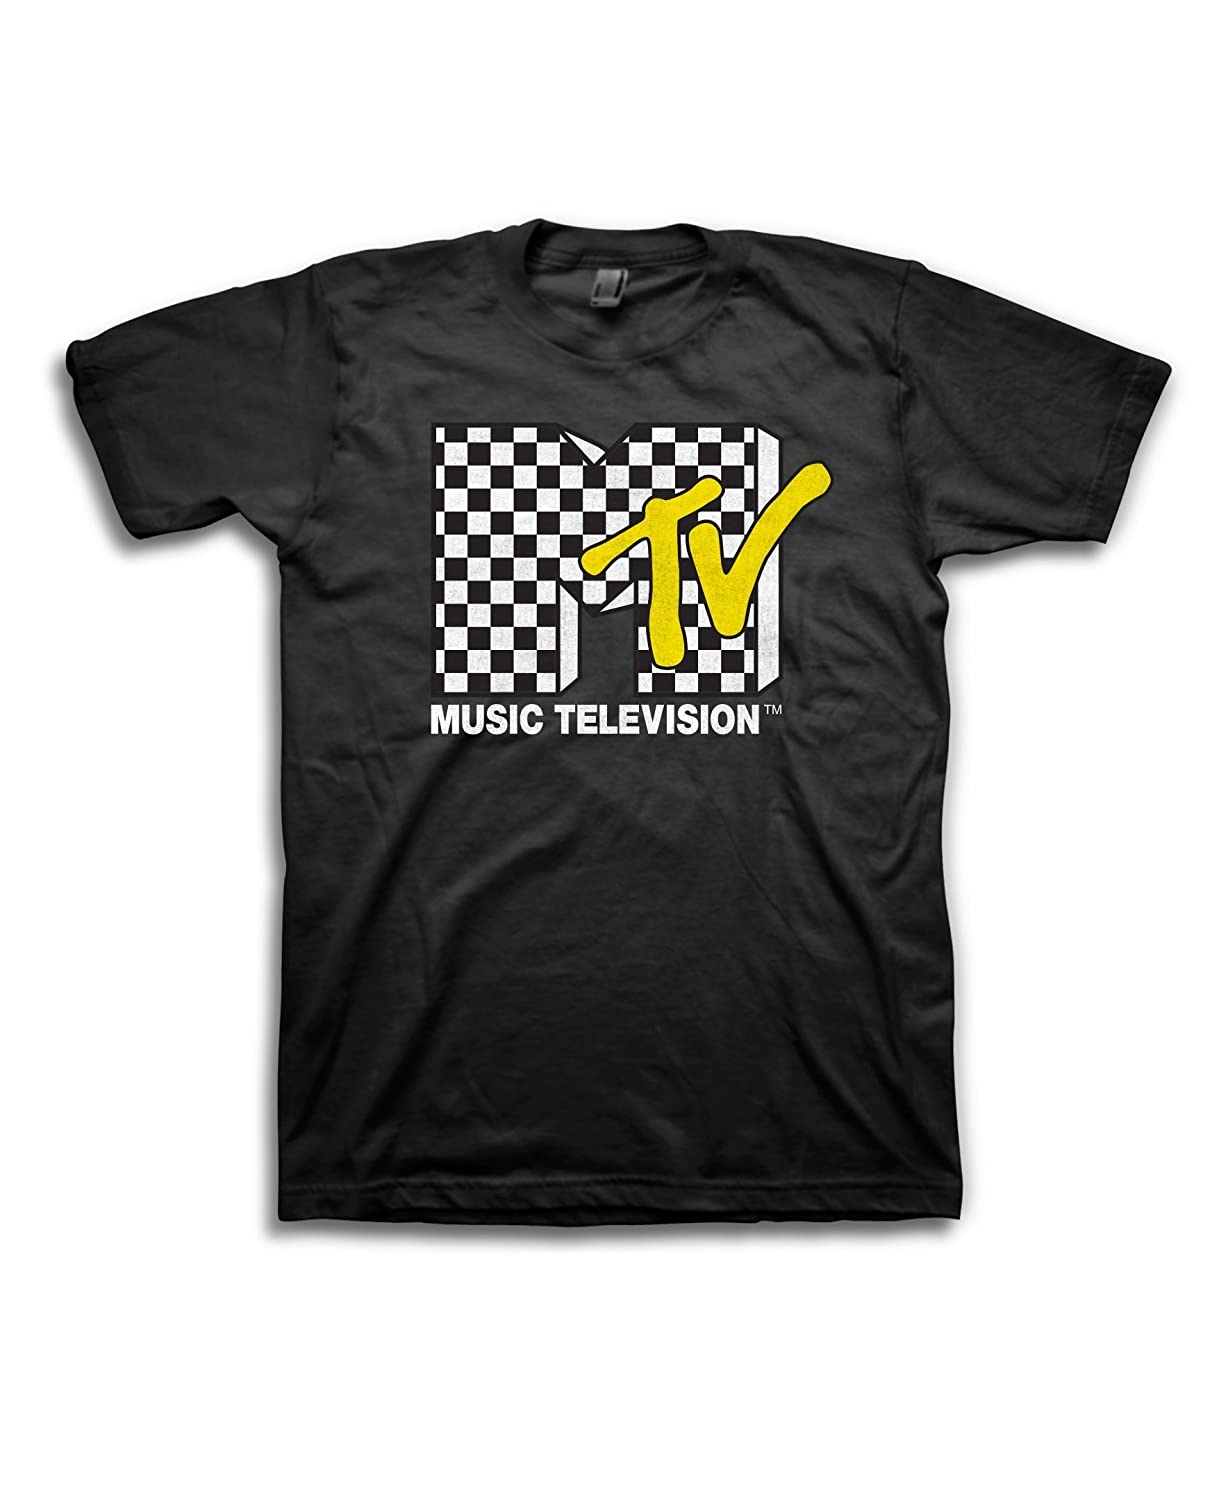 e04d4e826 Well, it\'s been a long time since 1981 and Video Killed the RadioStar but  you can represent a better era with an 80s MTV shirt in classic style.